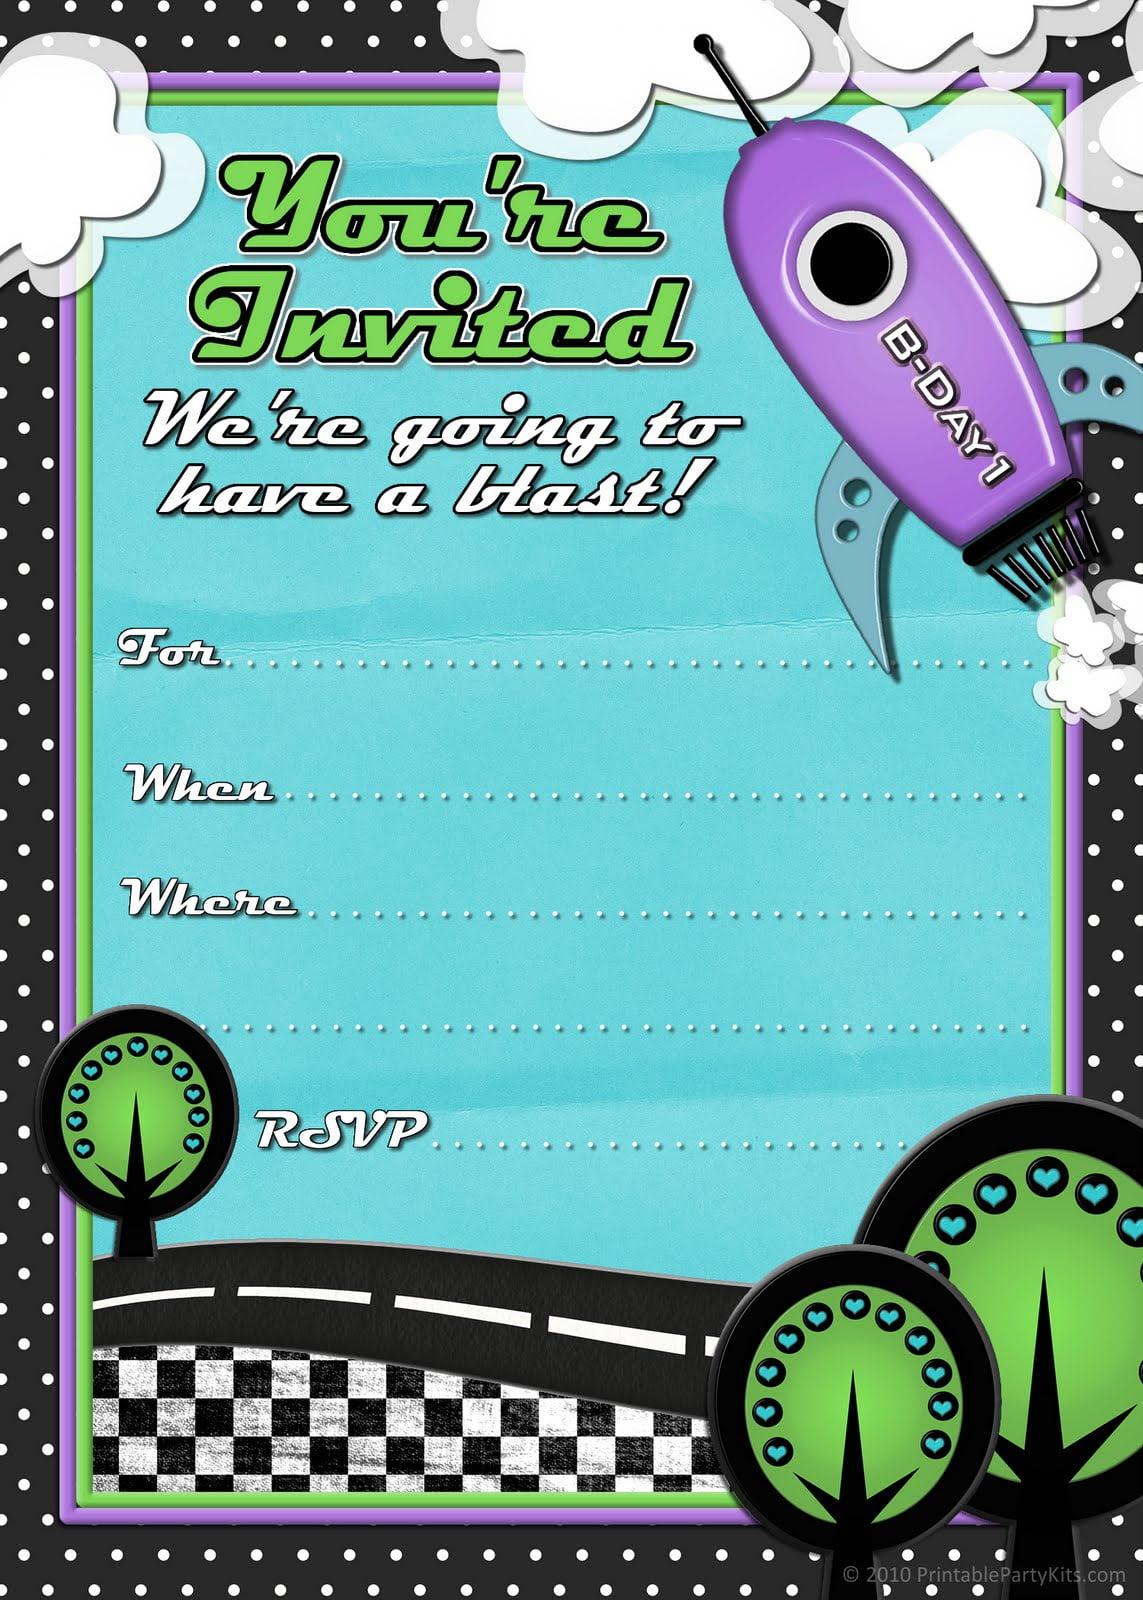 41 Printable Birthday Party Cards & Invitations For Kids To Make